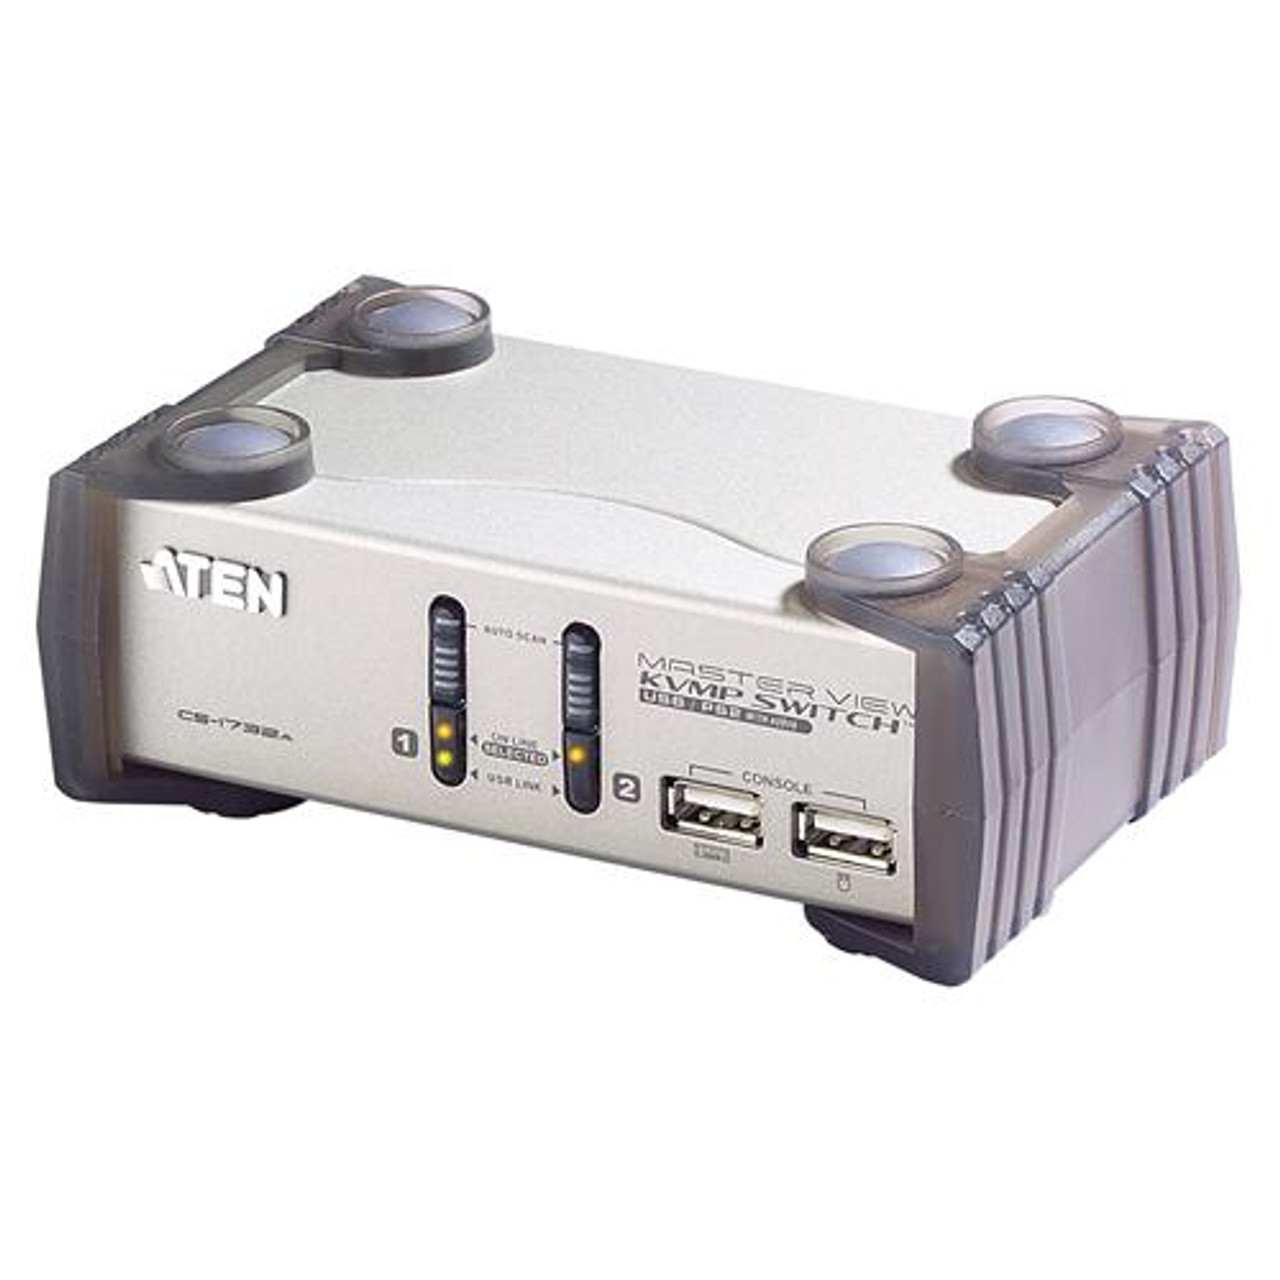 Product image for Aten 2 Port USB KVMP Switch with audio and USB 1.1 Hub - Cables Includ | CX Computer Superstore